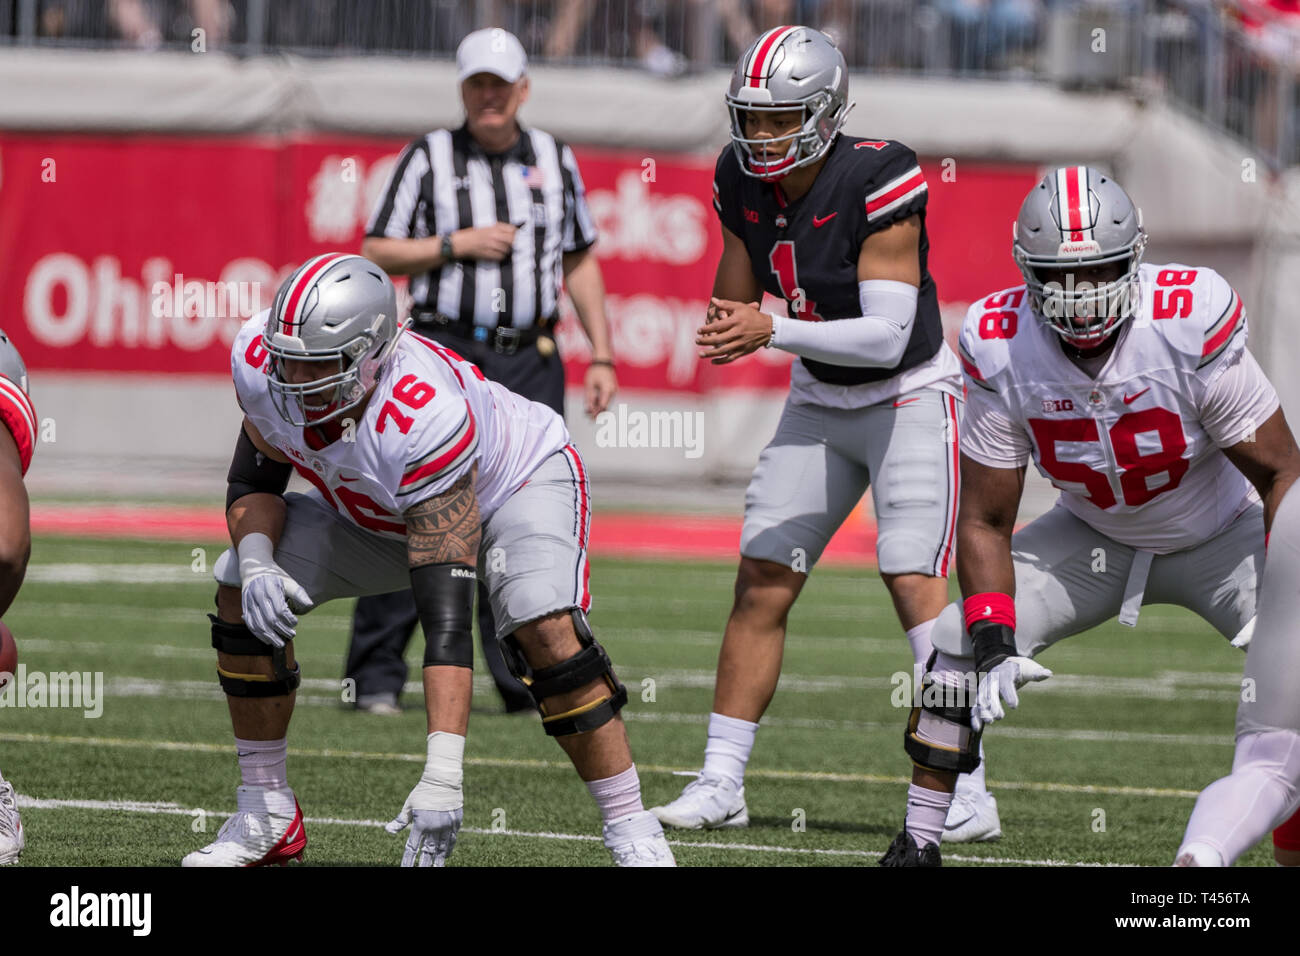 Columbus, Ohio, USA. 13th Apr, 2019. Ohio State Buckeyes Gray quarterback Justin Fields (1) prepares to take his first snap during the Ohio State spring game between the Scarlet and Gray at Ohio Stadium, Columbus, Ohio. Credit: Scott Stuart/ZUMA Wire/Alamy Live News - Stock Image